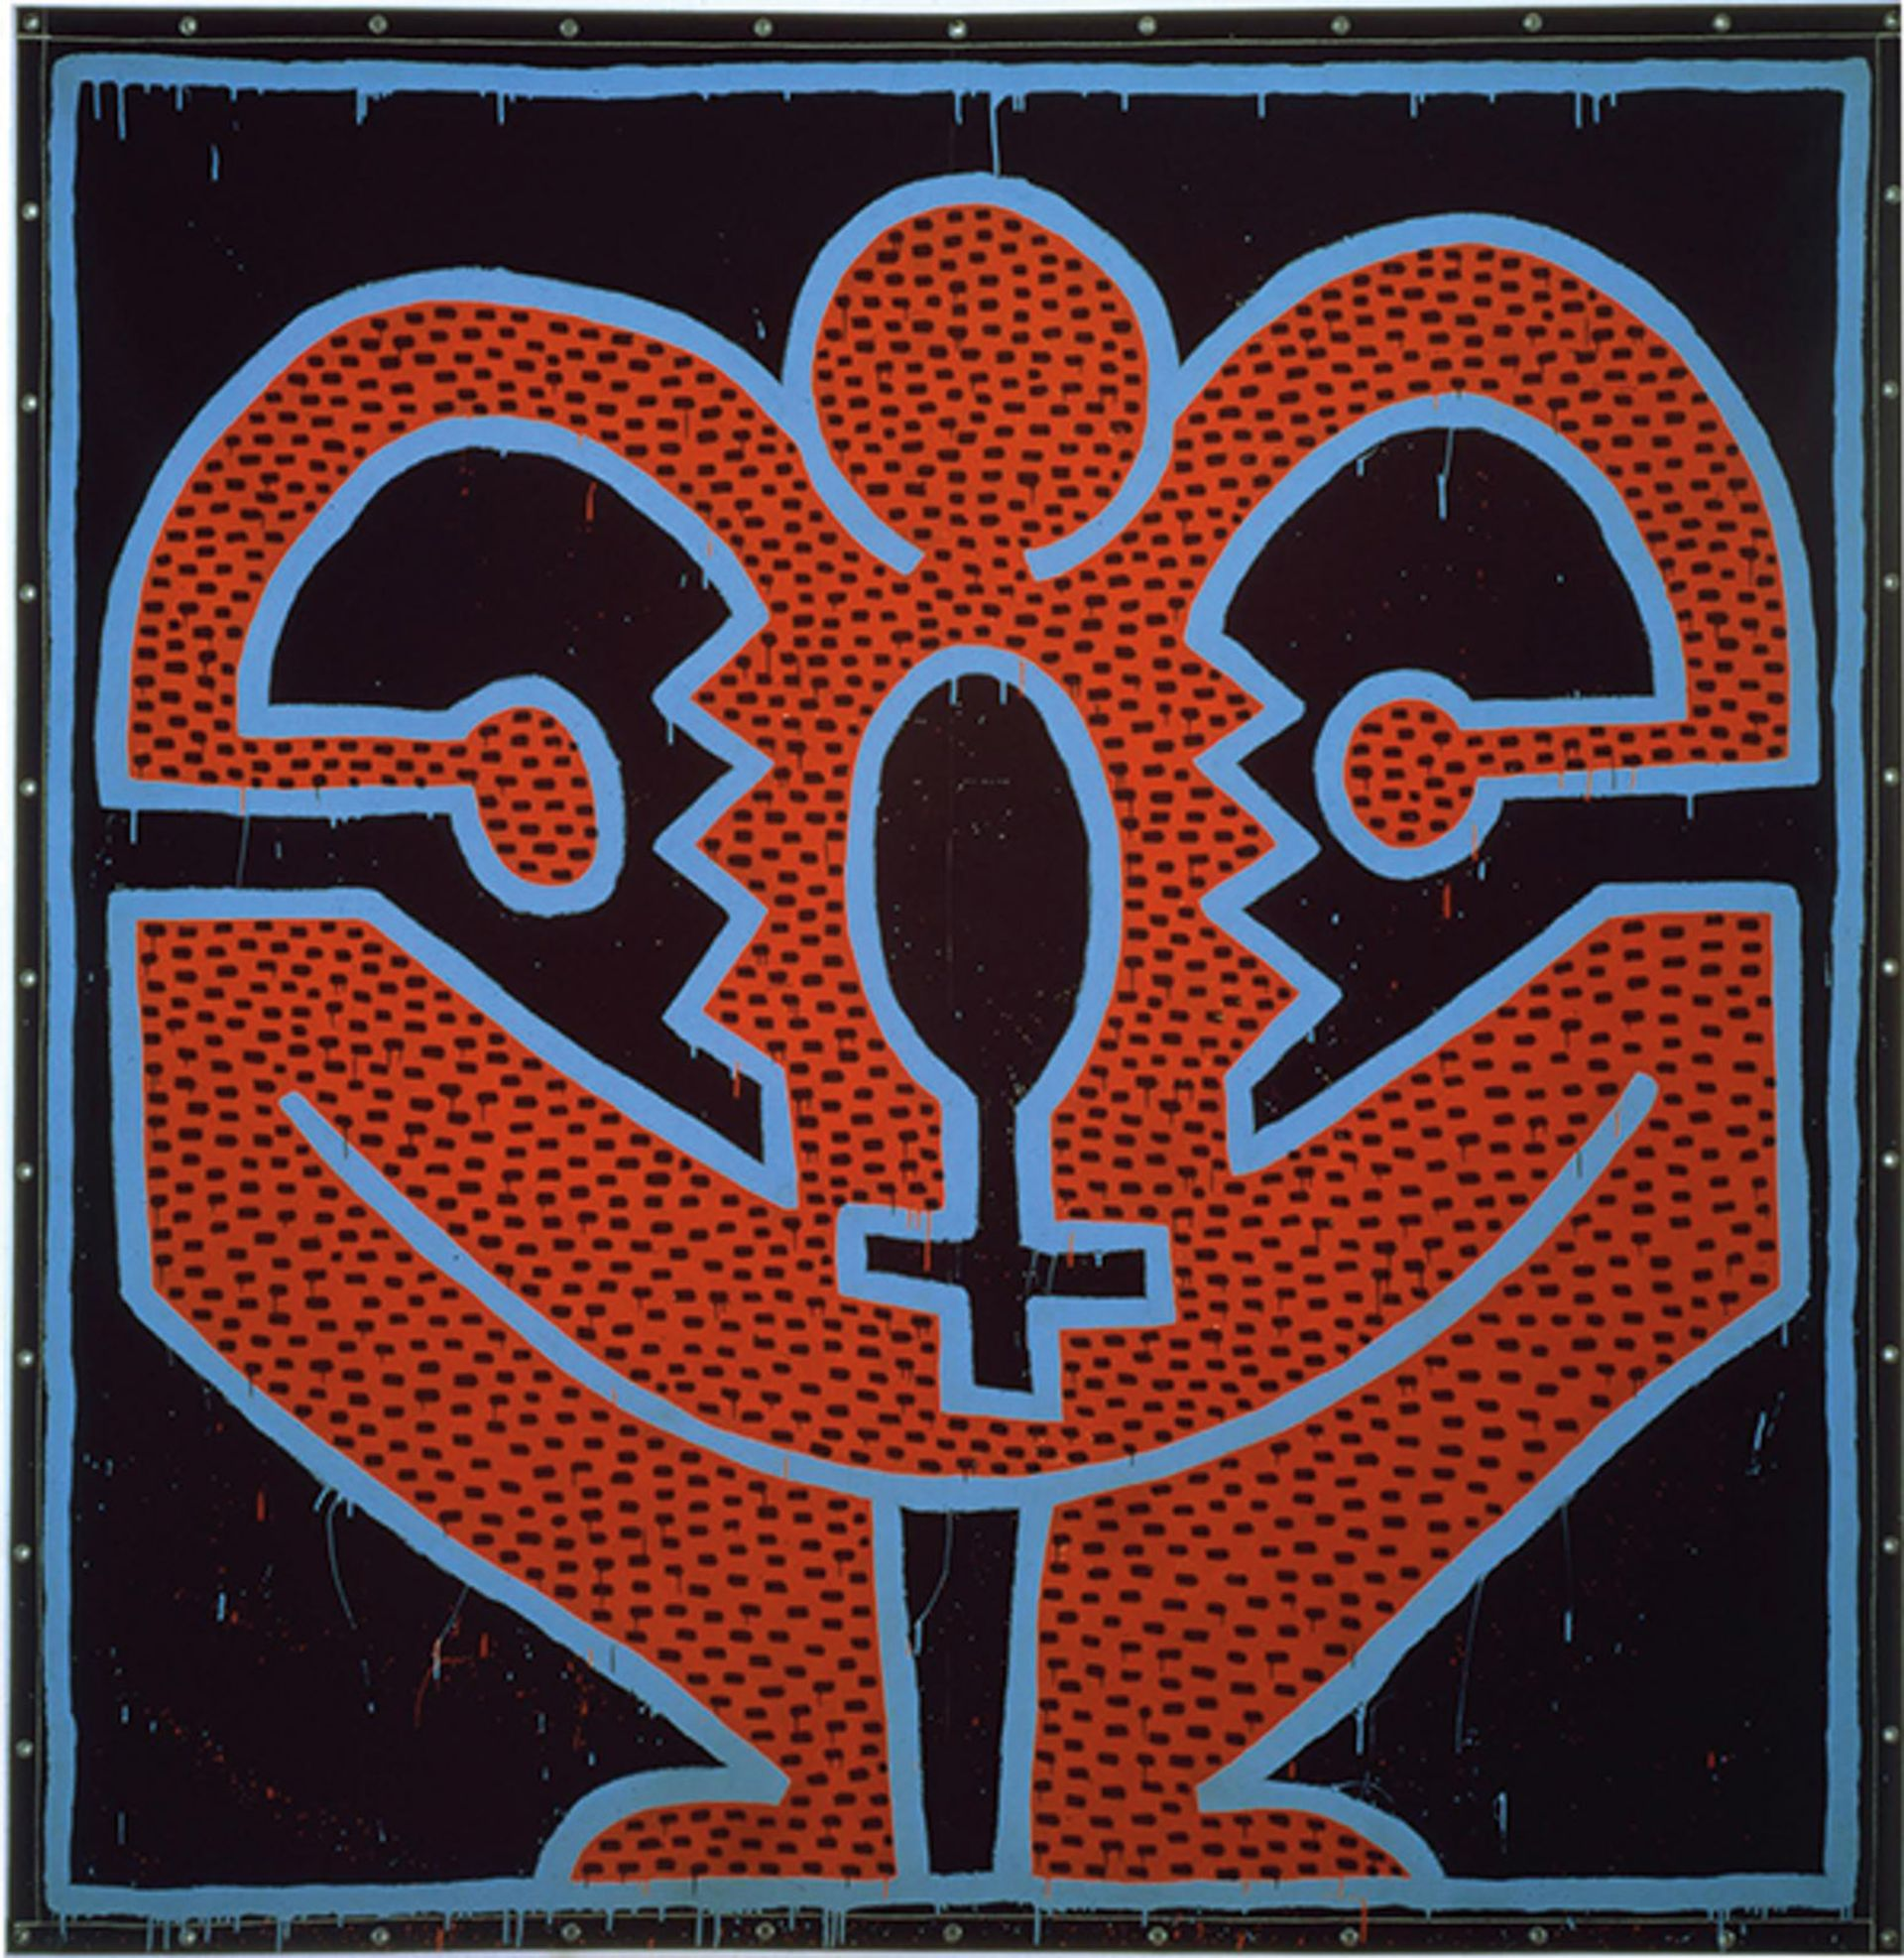 Keith Haring's canvas tarpaulin painting Untitled (1983) was one of the works to be sold by Edelman Courtesy of Edelman Arts